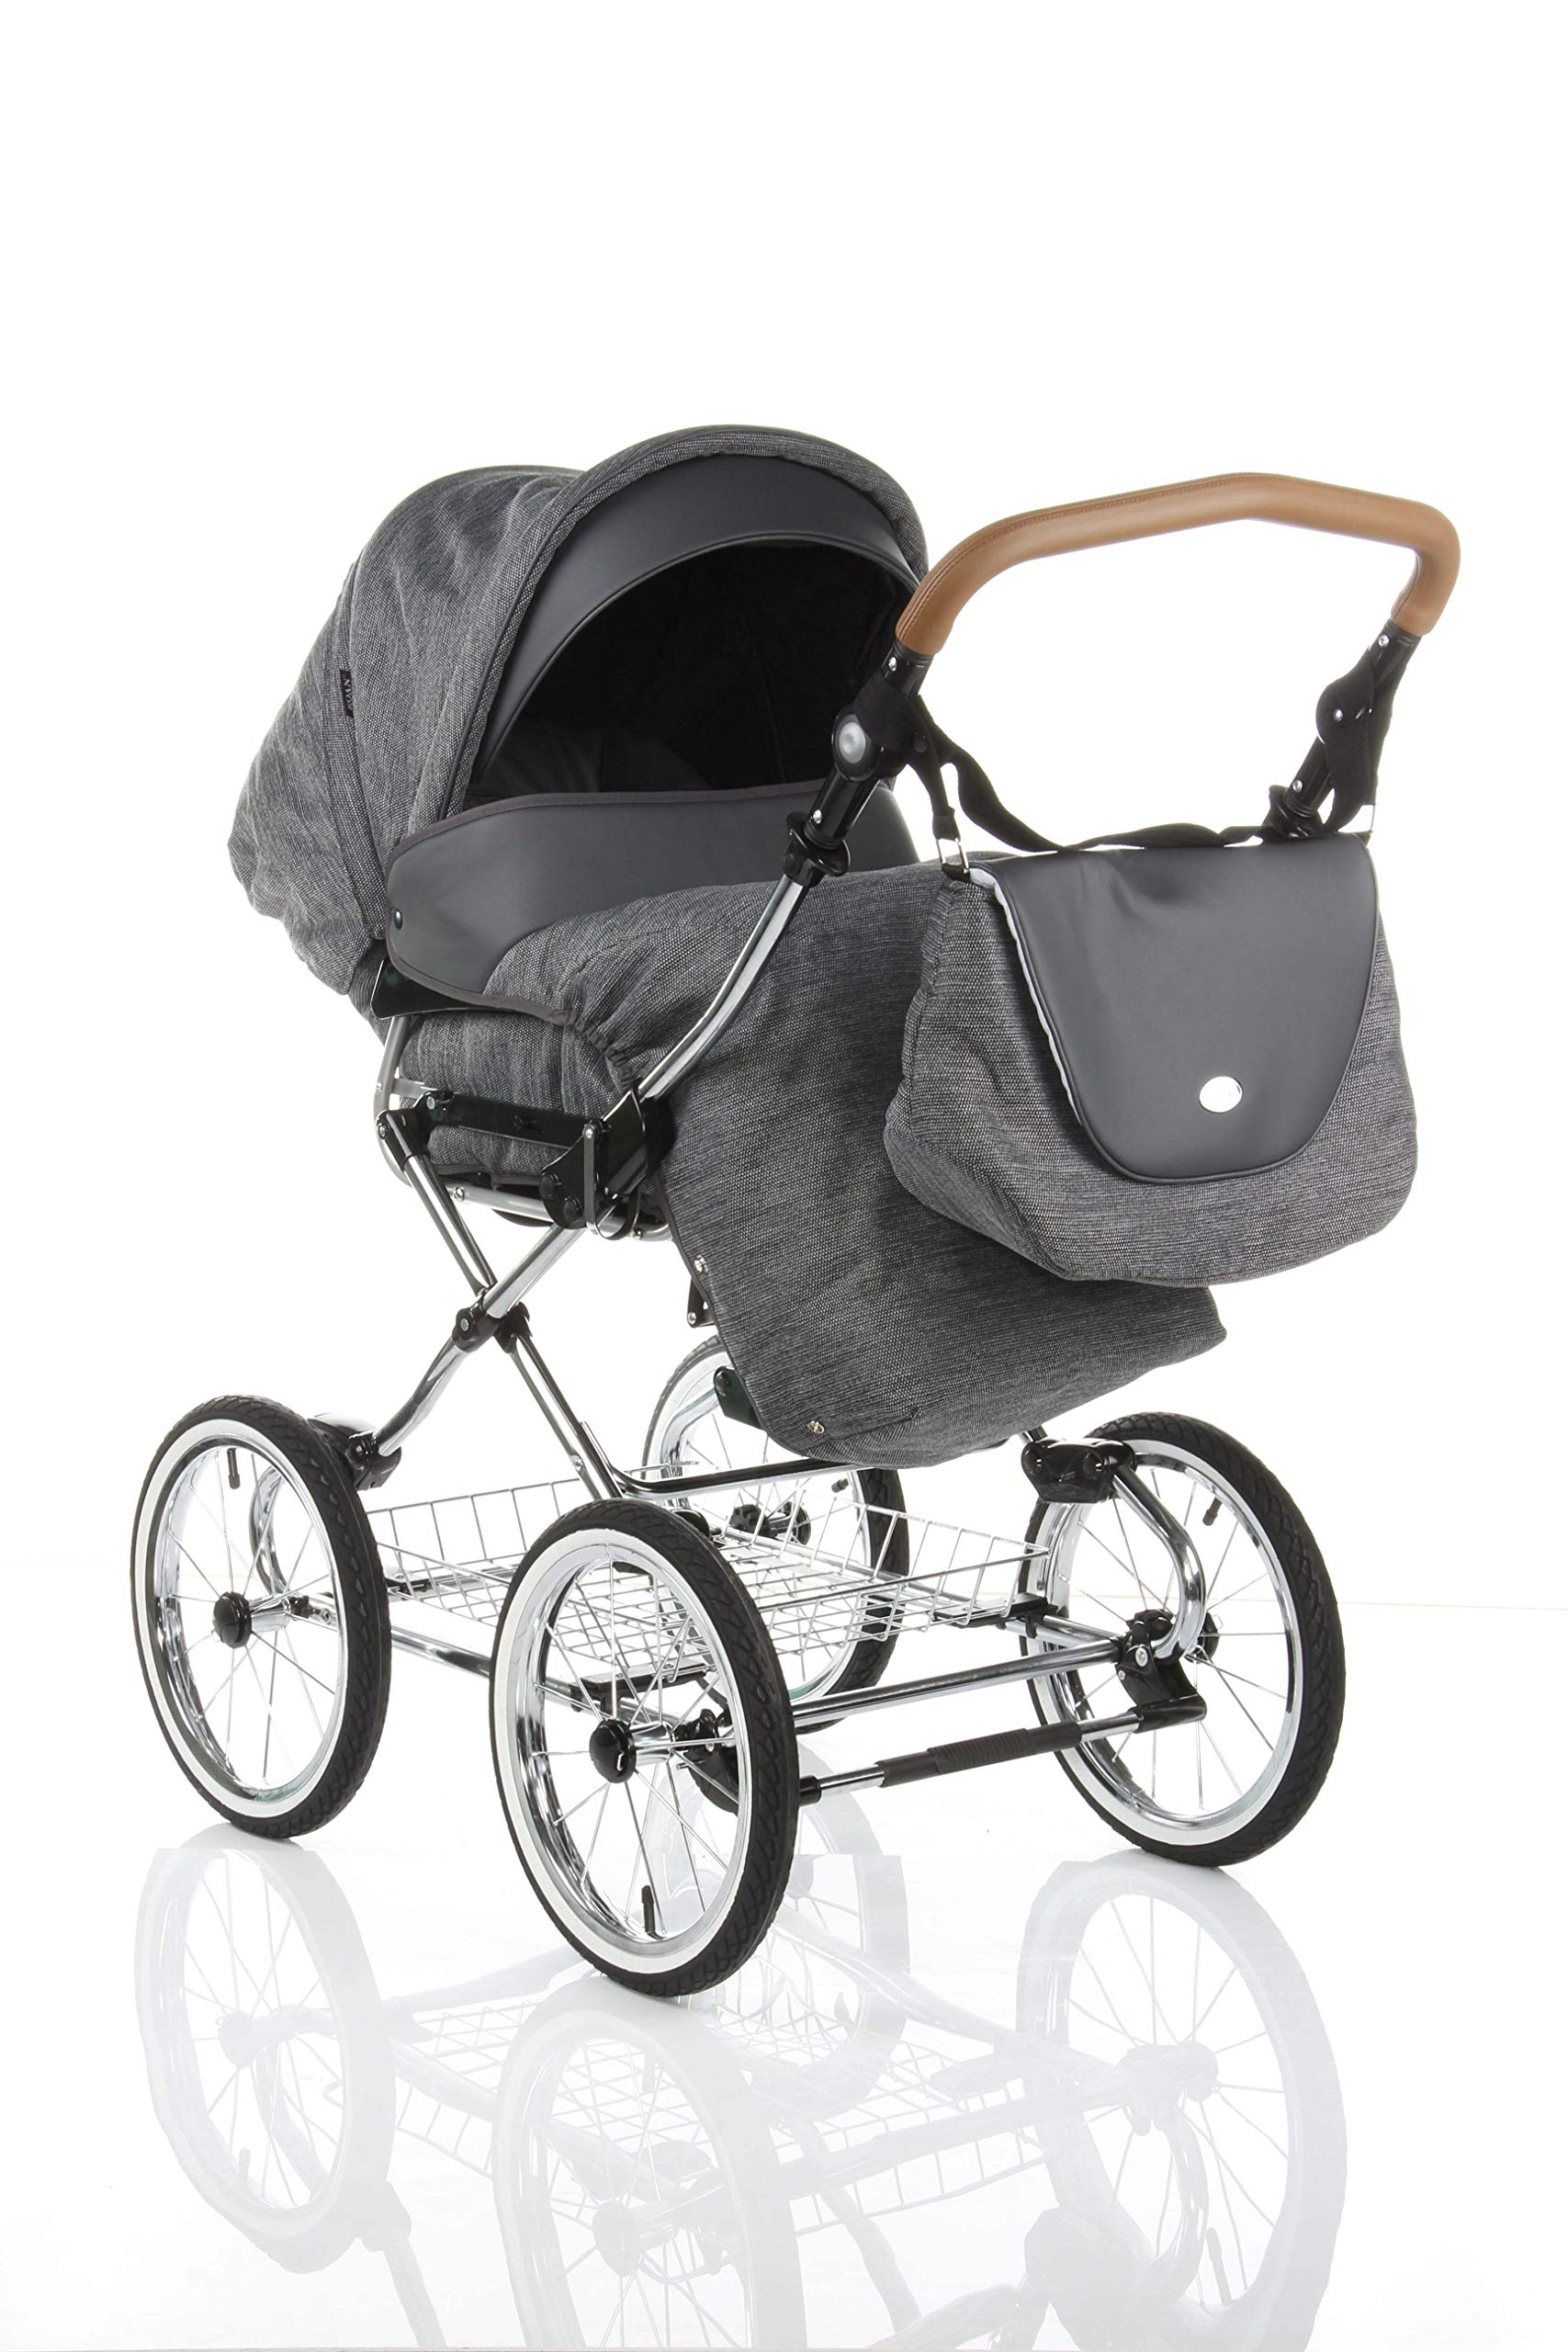 Children's Pram Buggy Stroller Combination Car seat Classic Retro Baby Carrier ROAN Emma (E-81 Dark Grey Melange-Grey Leather, 2IN1) JUNAMA Frame / wheels Sturdy and lightweight aluminum frame construction with folding function 1-click system for easy assembly and disassembly Practical carrying handle for easy storage of the folded frame Wheels for inflating (14 inch) removable wheels Brake system with central brake Height-adjustable push handle - 10-fold matching shopping basket Dimensions folded with wheels: 86 x 60 x 40 cm folded without wheels: 76 x 60 x 26 cm Total height of the stroller to hood top: 106 cm Height of the tub from the ground: 60 cm Wheelbase External dimensions: 80x 58 cm Variable height of the push handle: 77- 119 cm Weight of the frame incl. Wheels and carrying bag 15 kg Carrycot Length and width of carrycot outside: 88 x 42 cm Carrying bag length and width inside: 76 x 35 cm Sturdy plastic tub with comfortable mattress and side protection Ventilation slots on the plastic tub The baby car seat 0-13 kg Maxi-Cosi in black incl. Adapter 7